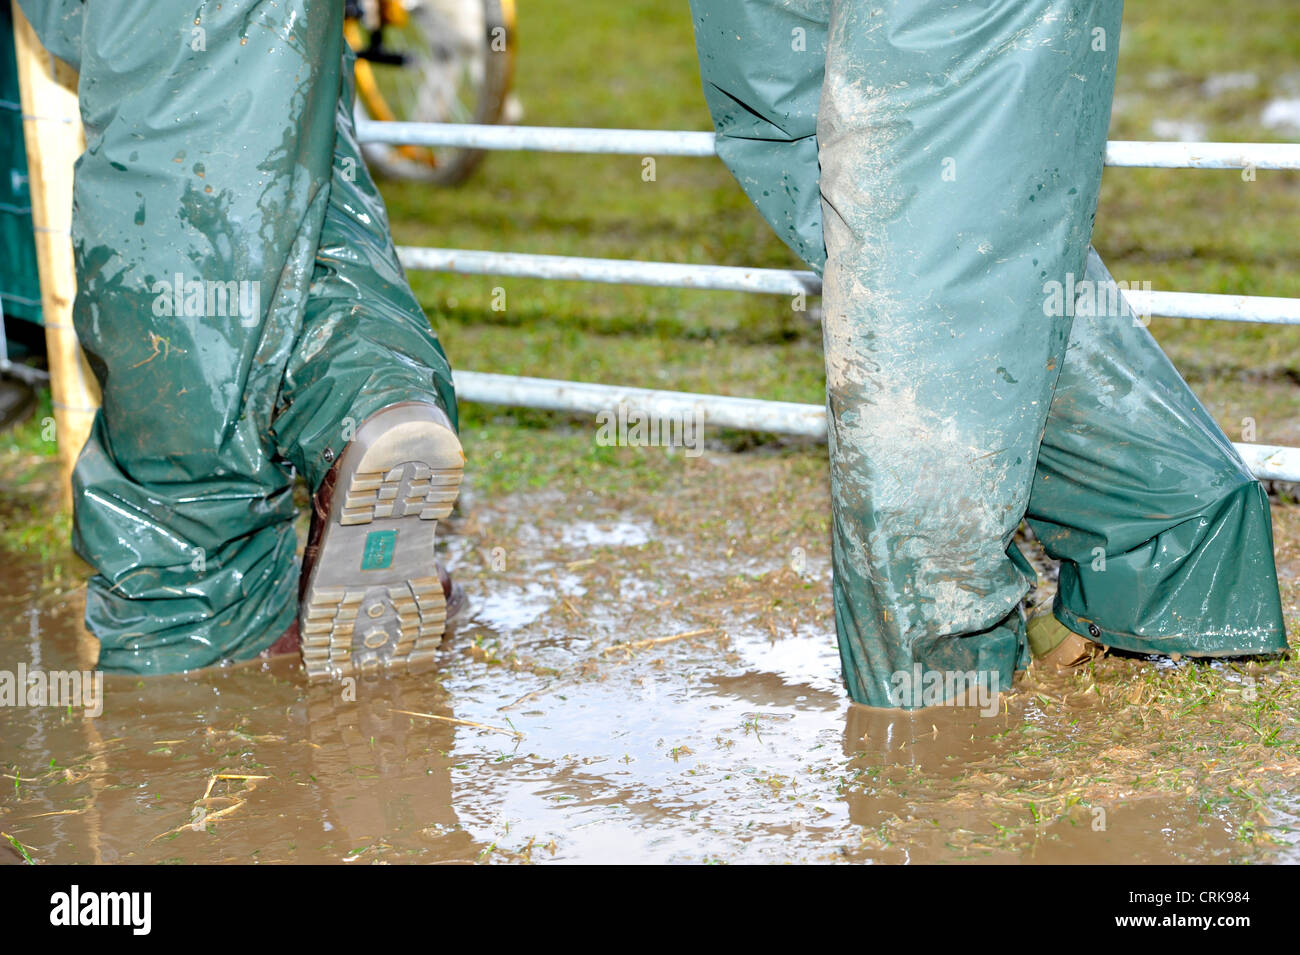 Farmers Wearing Wellington Boots And Waterproofs Standing